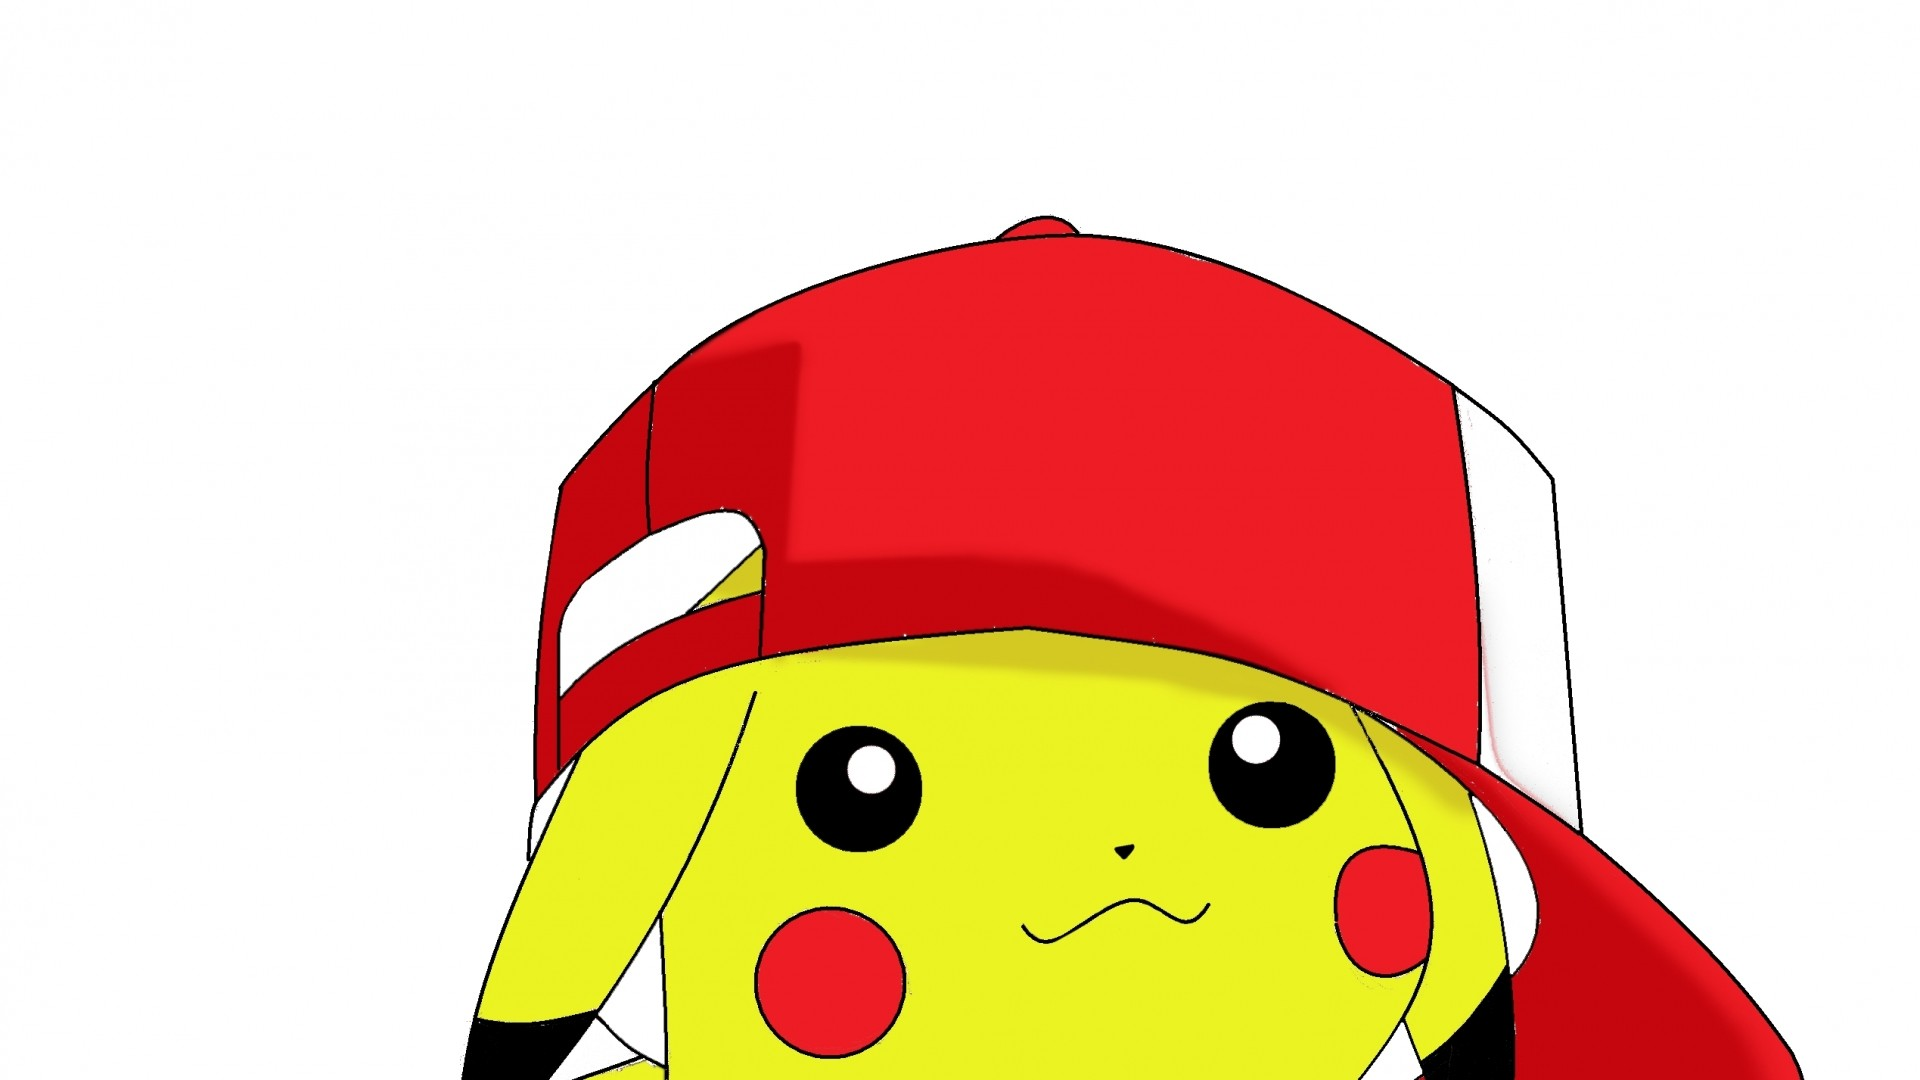 Cute Pikachu Wallpapers 79 Images